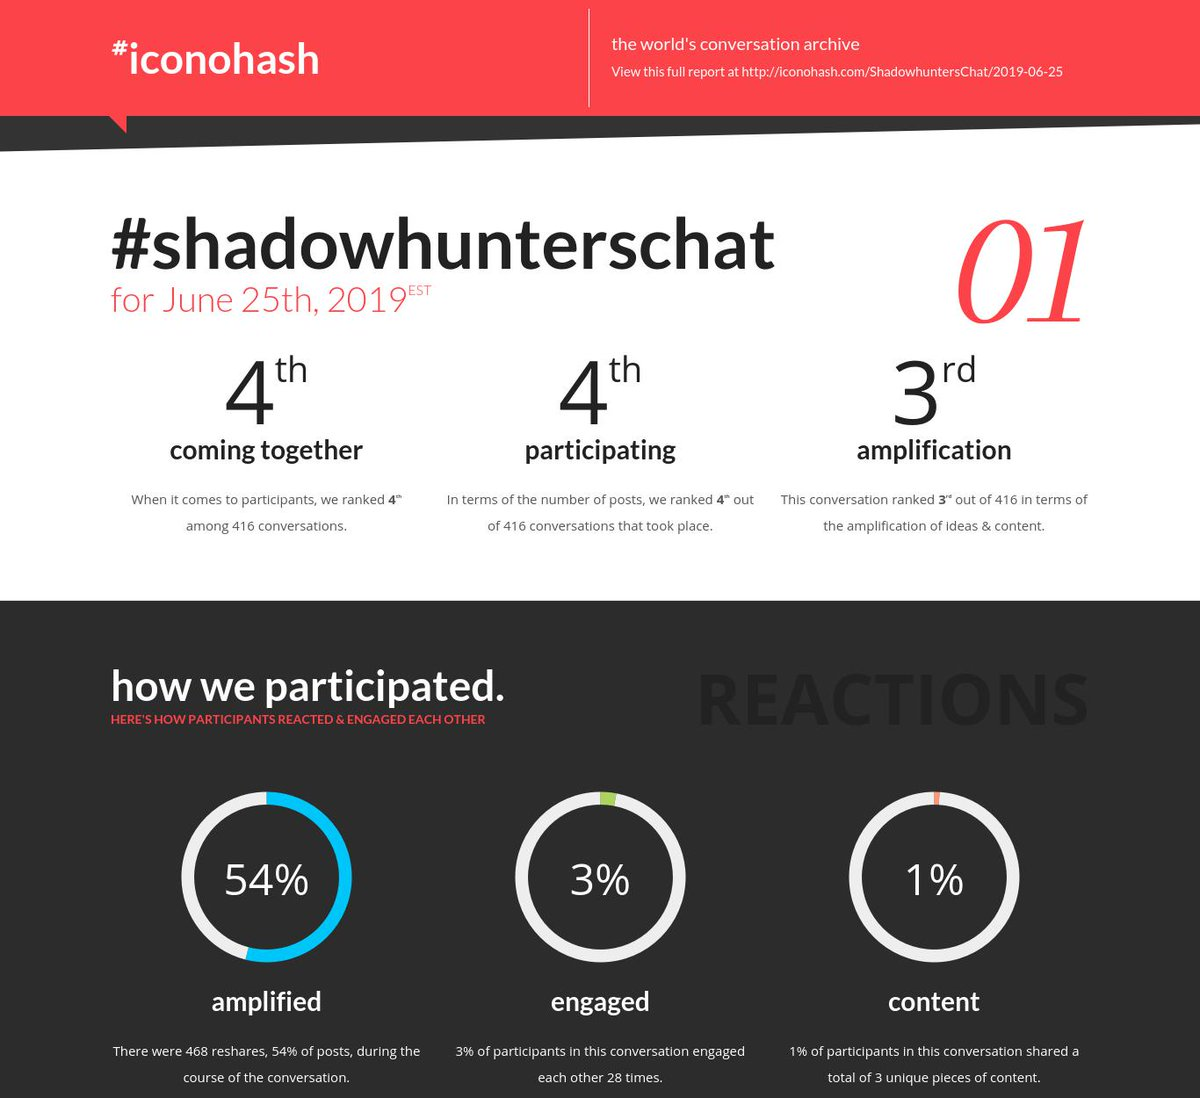 Your daily conversation report is ready for #ShadowhuntersChat for Jun 25th https://t.co/Pt1EEM0DrC https://t.co/RPOajvL1PW